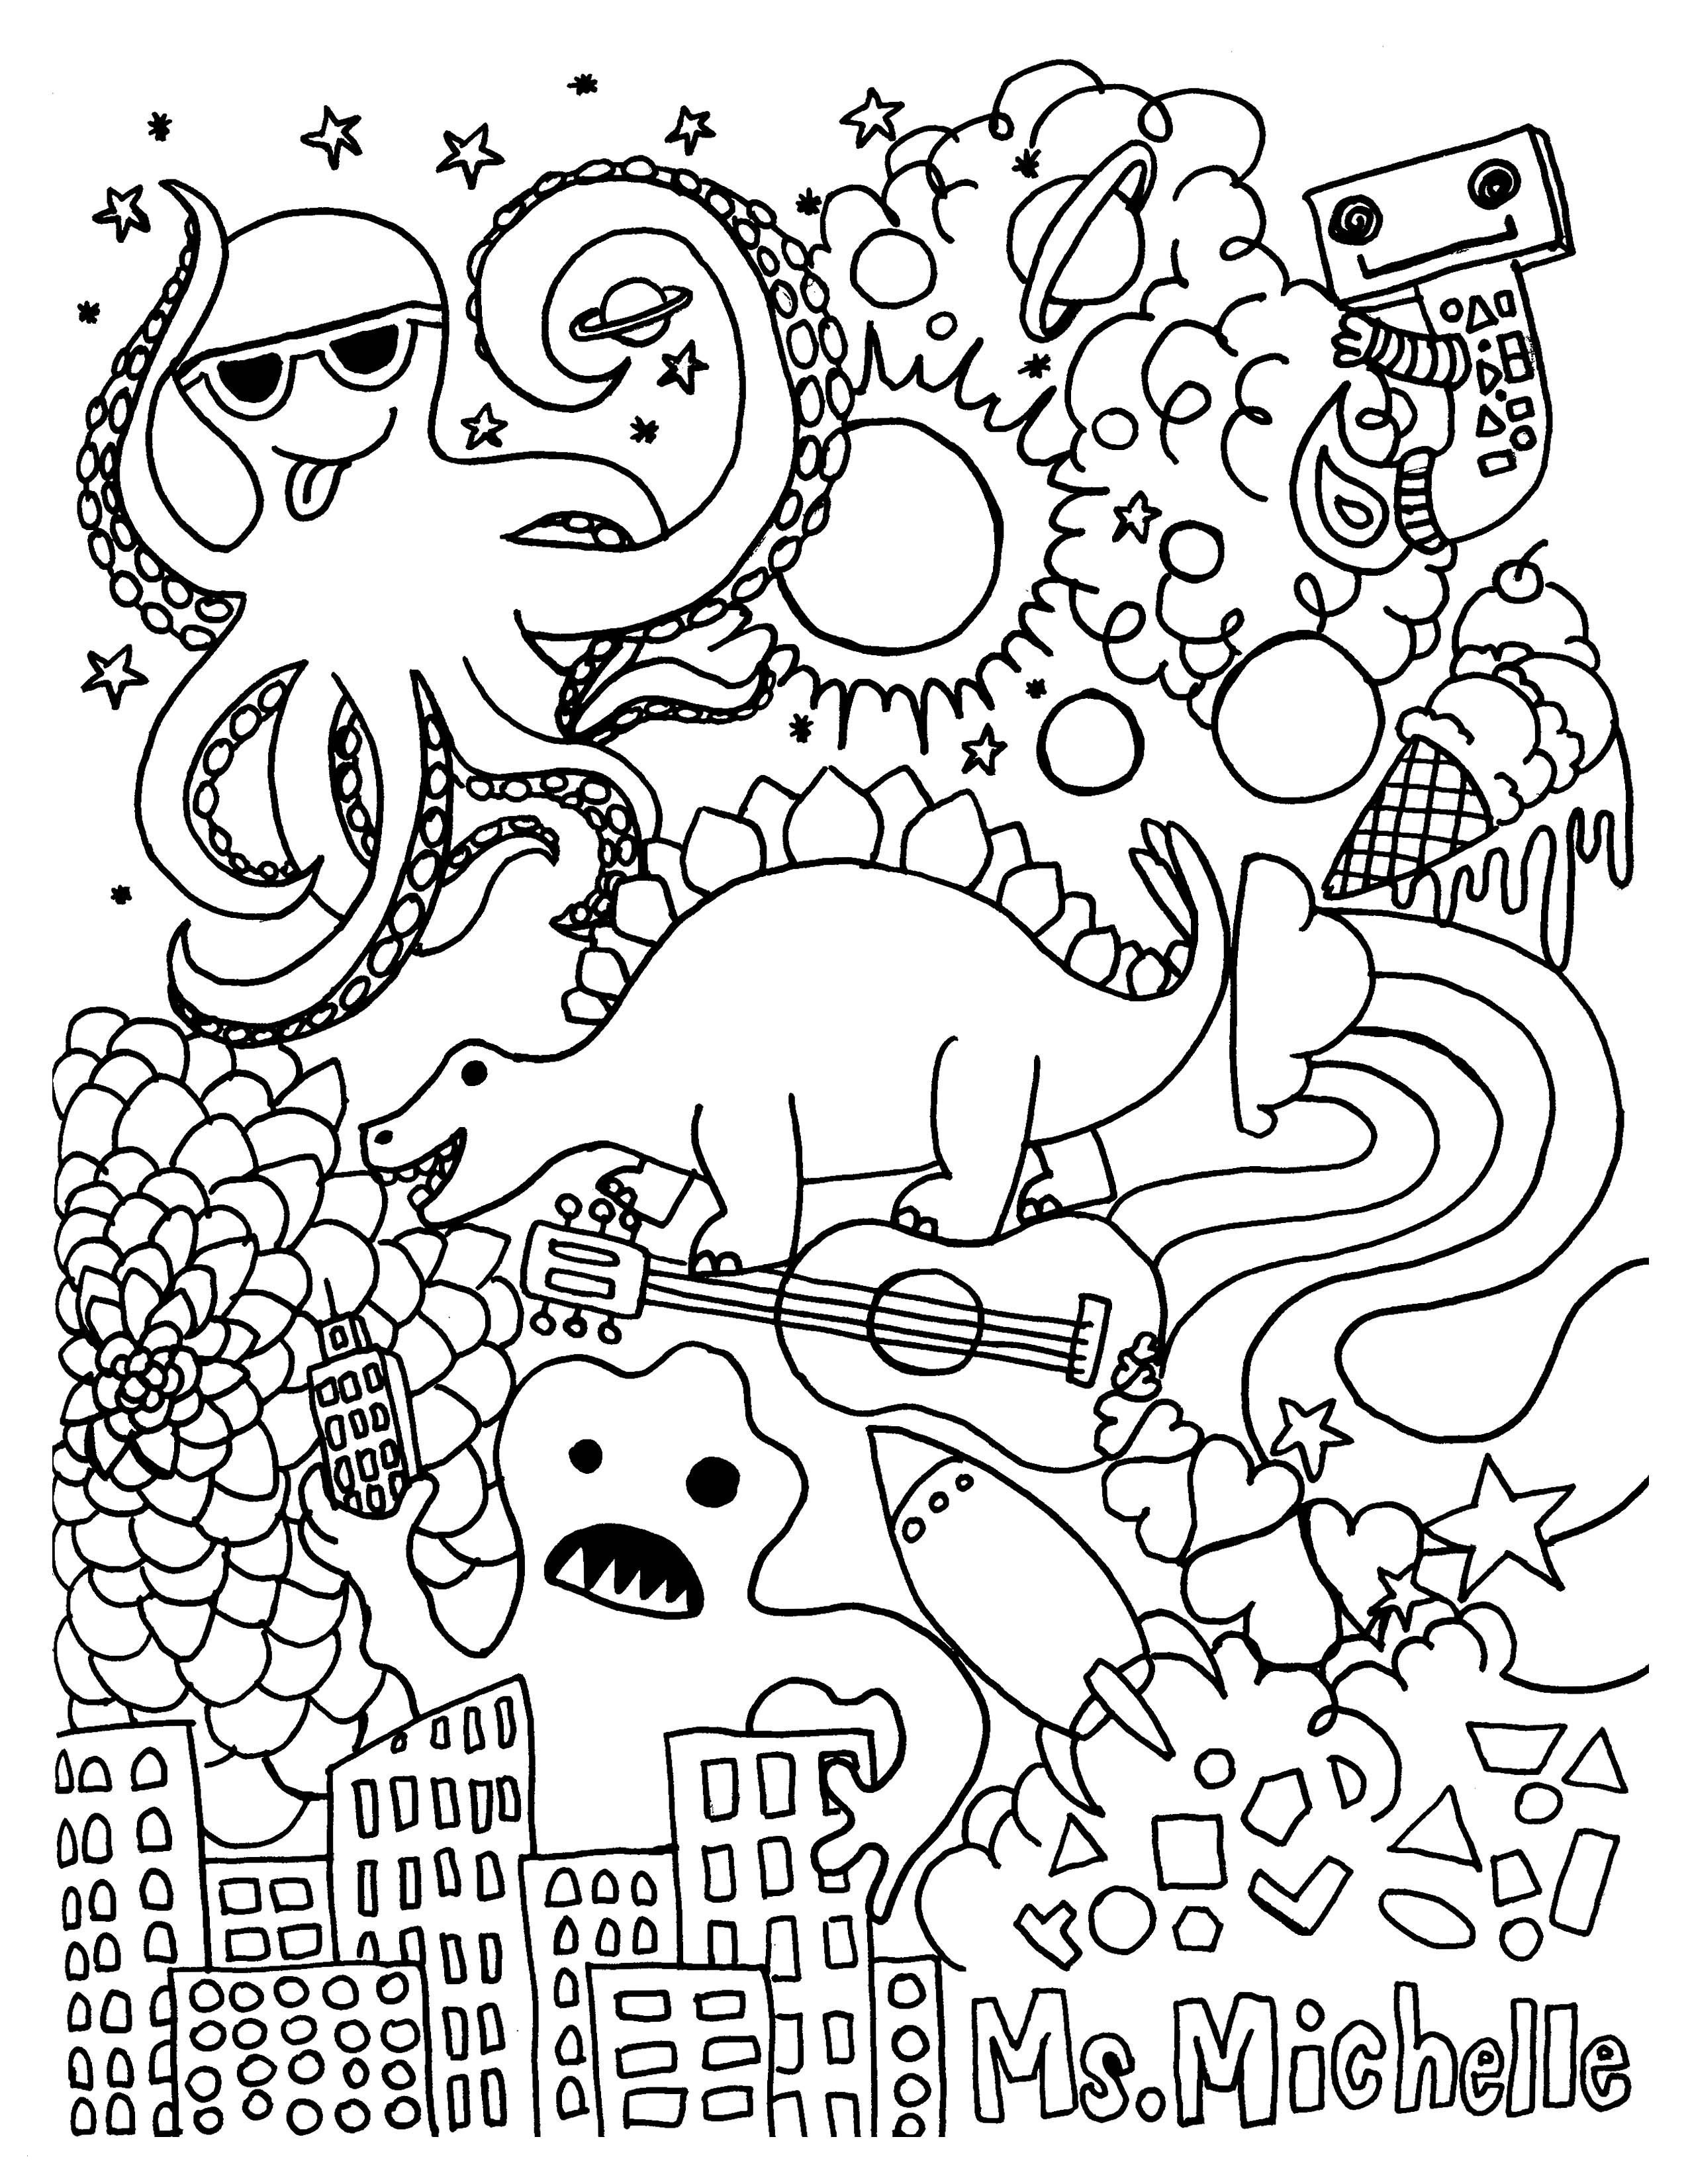 25 Bible Story Coloring Pages Free Gallery - Coloring Sheets